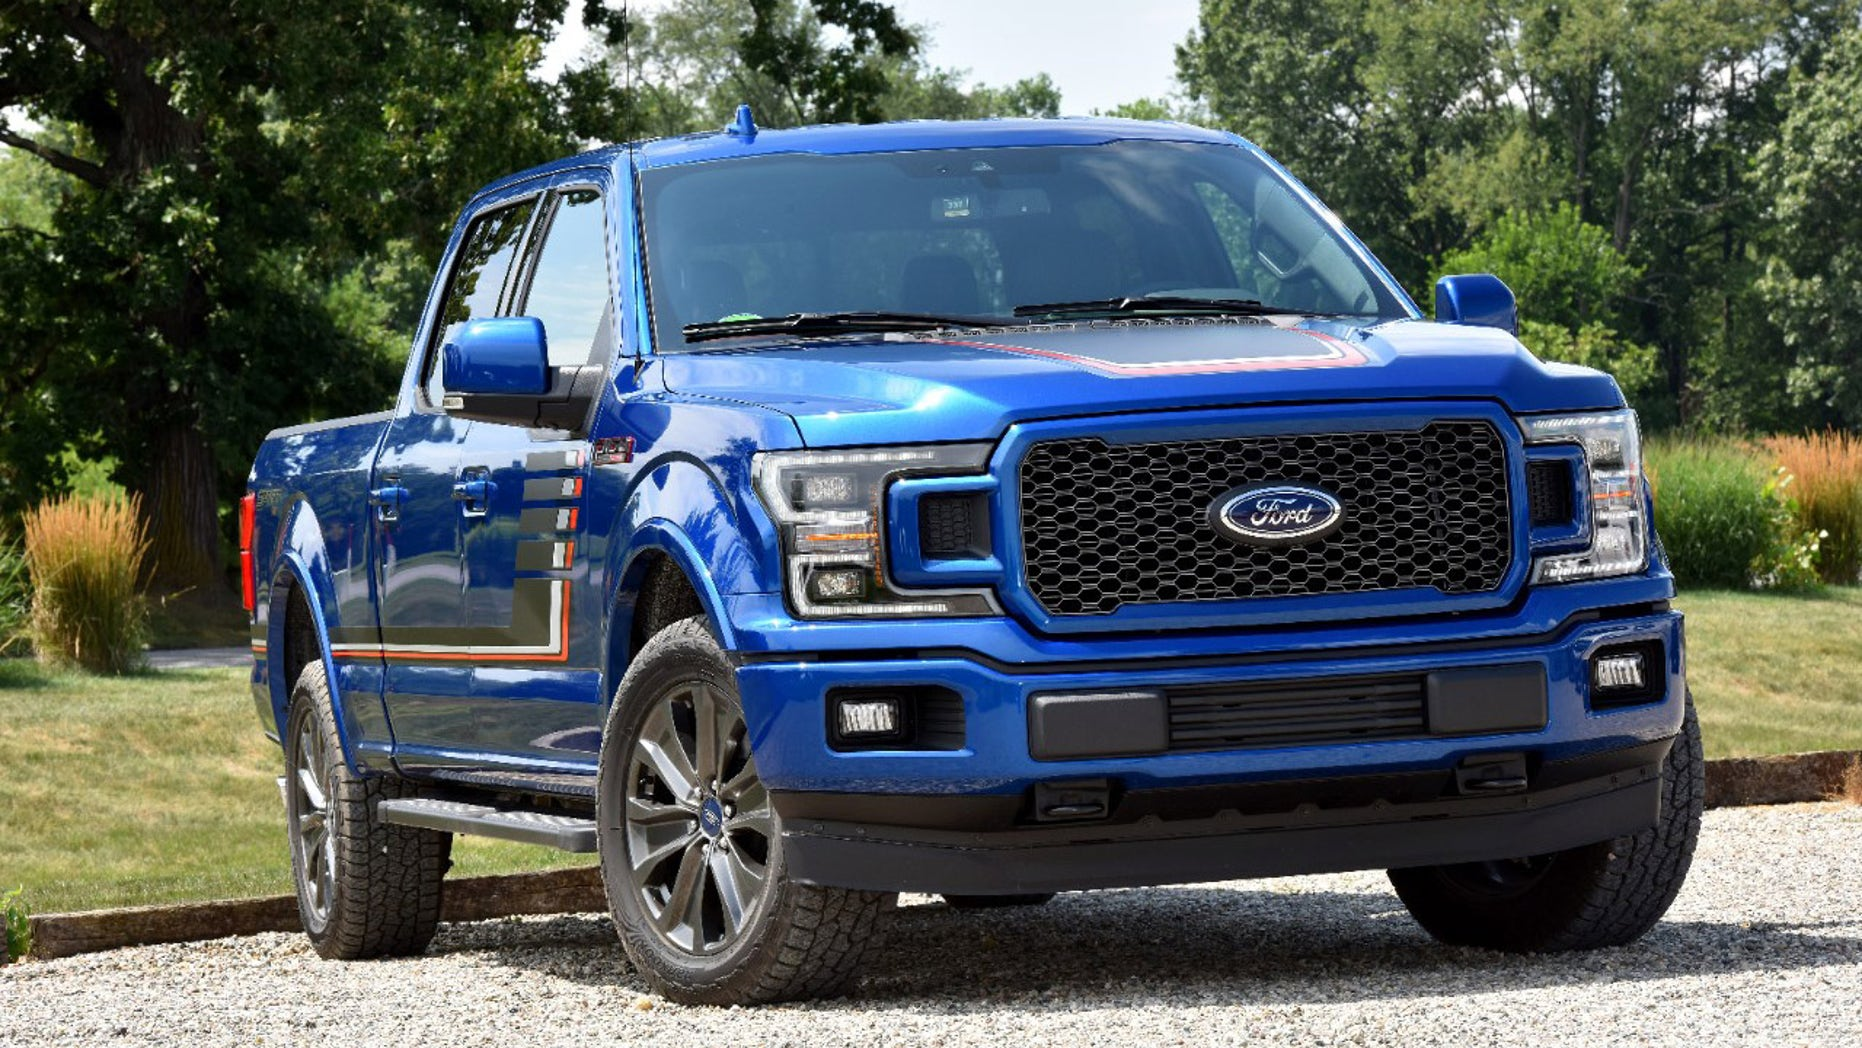 Ford is building an electric F-150, too, besides a hybrid version